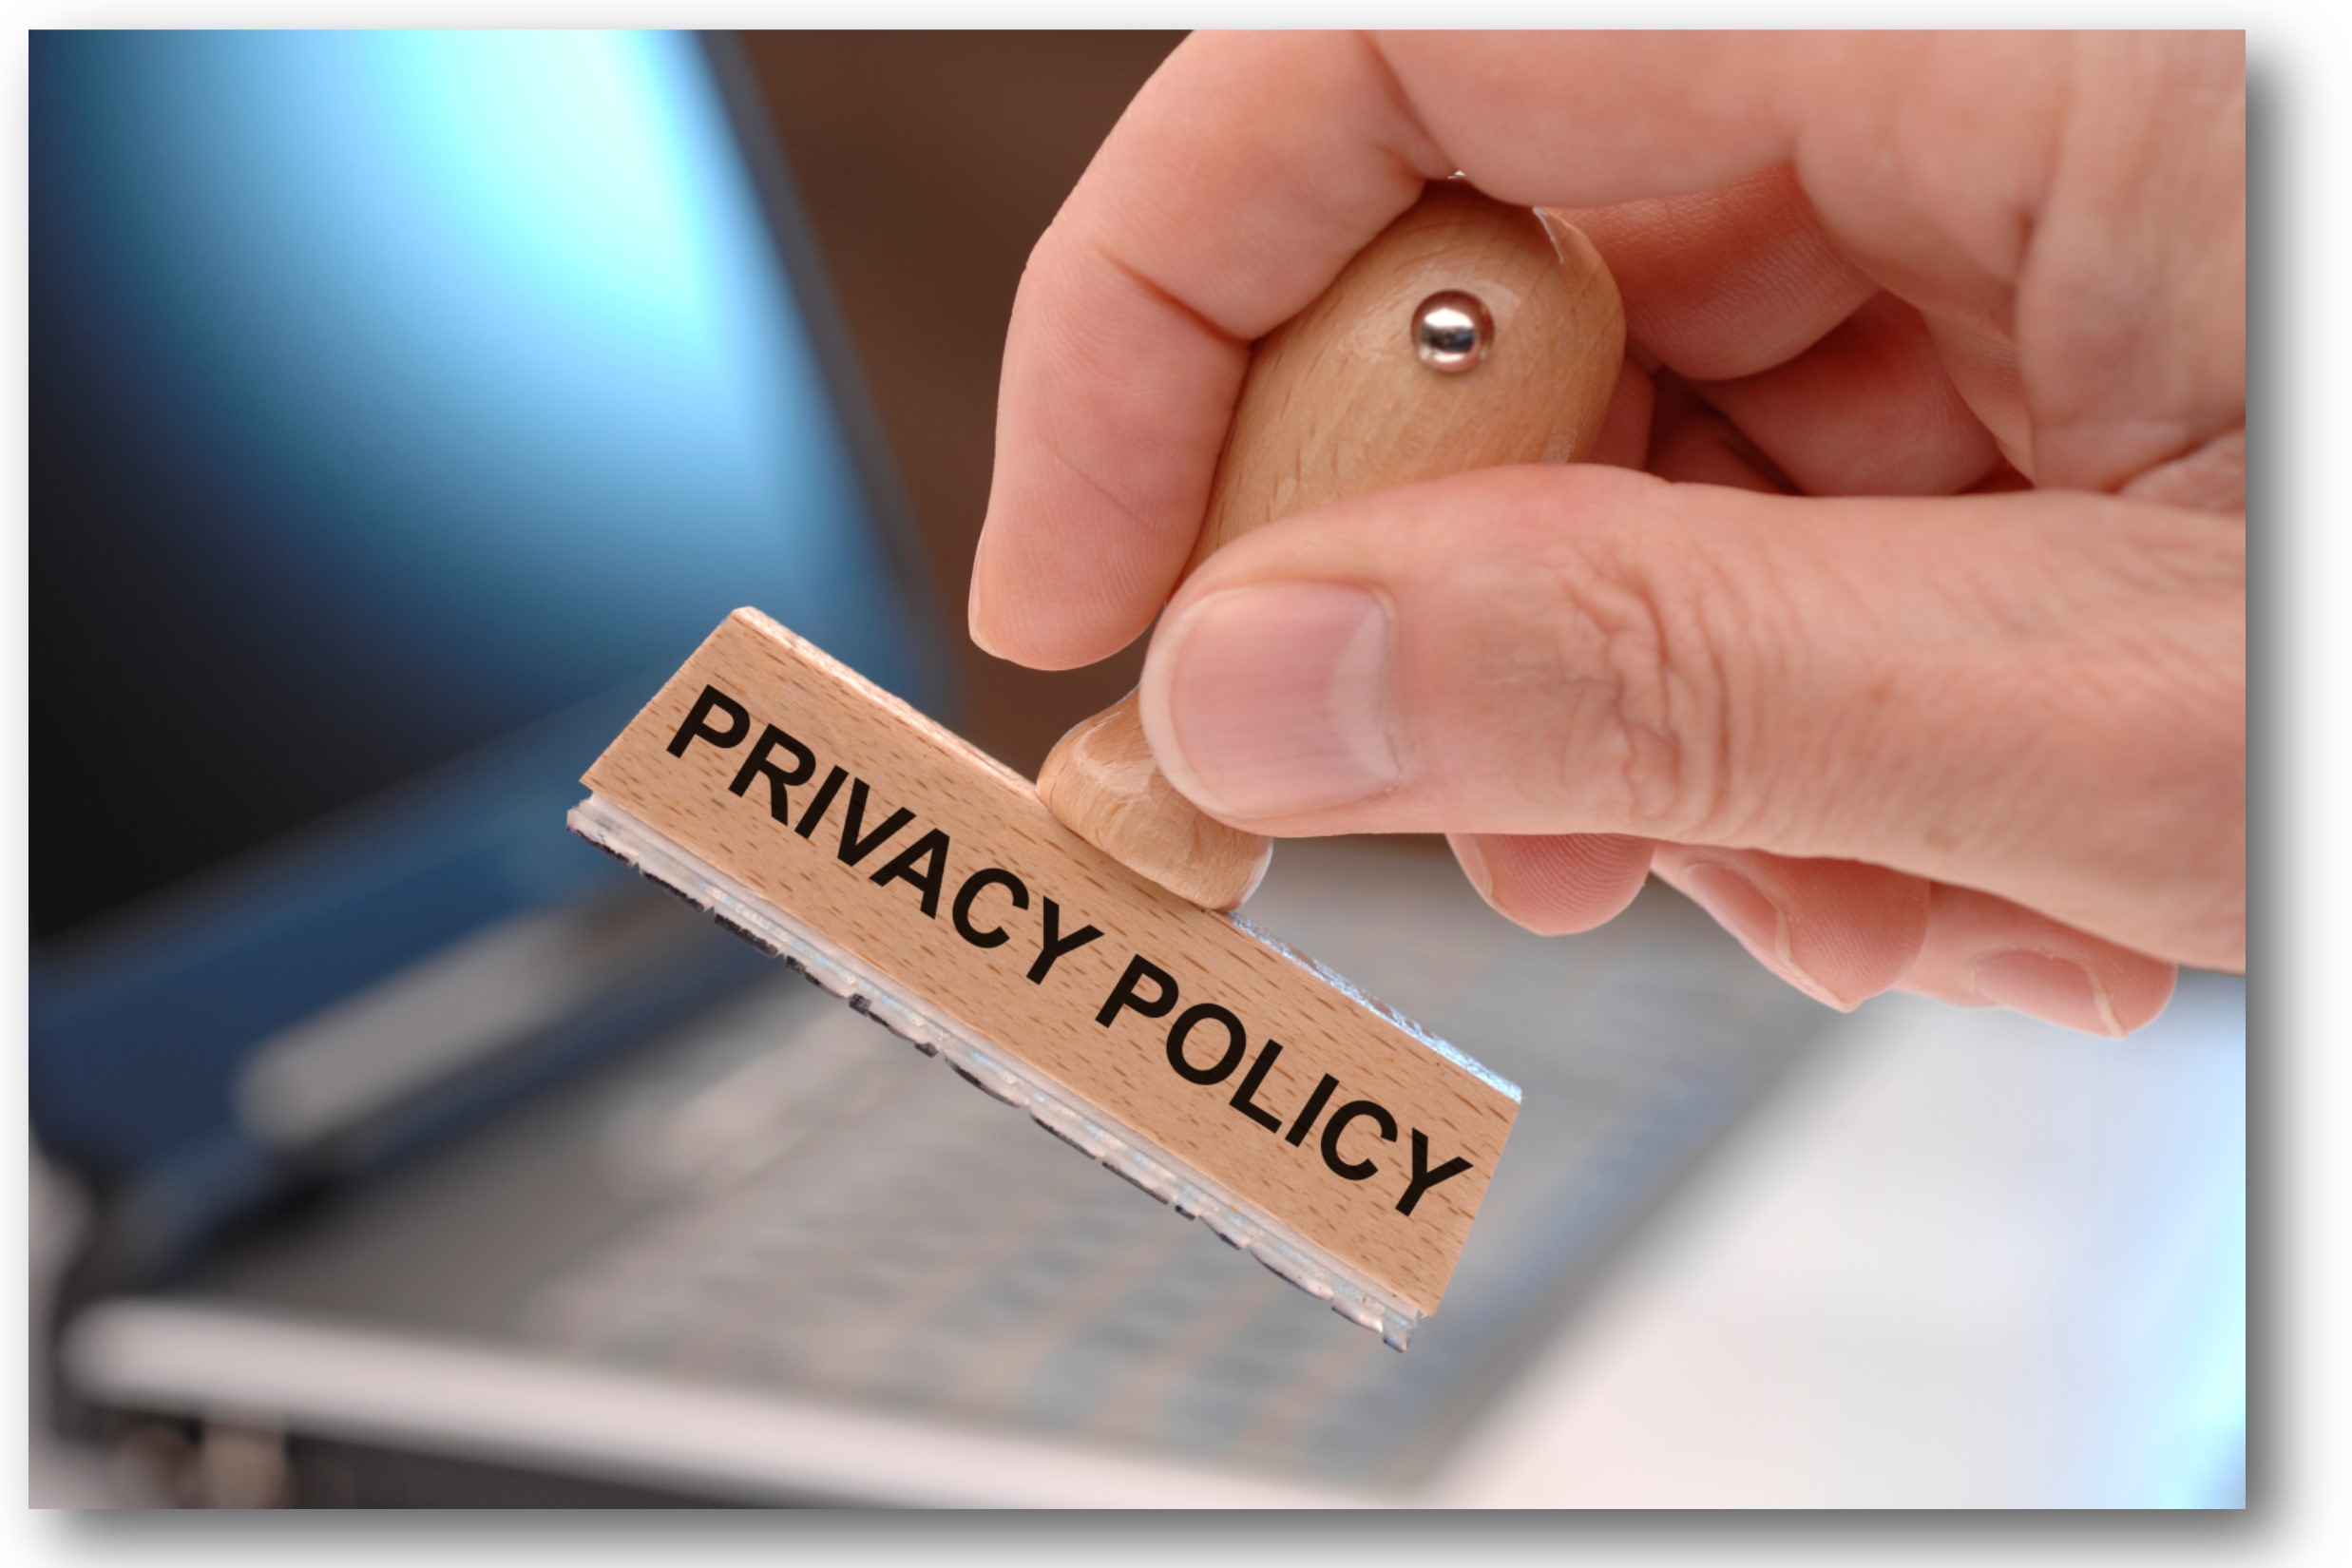 HomeschoolLifecom  Homeschool Group and Coop Websites  Privacy Policy